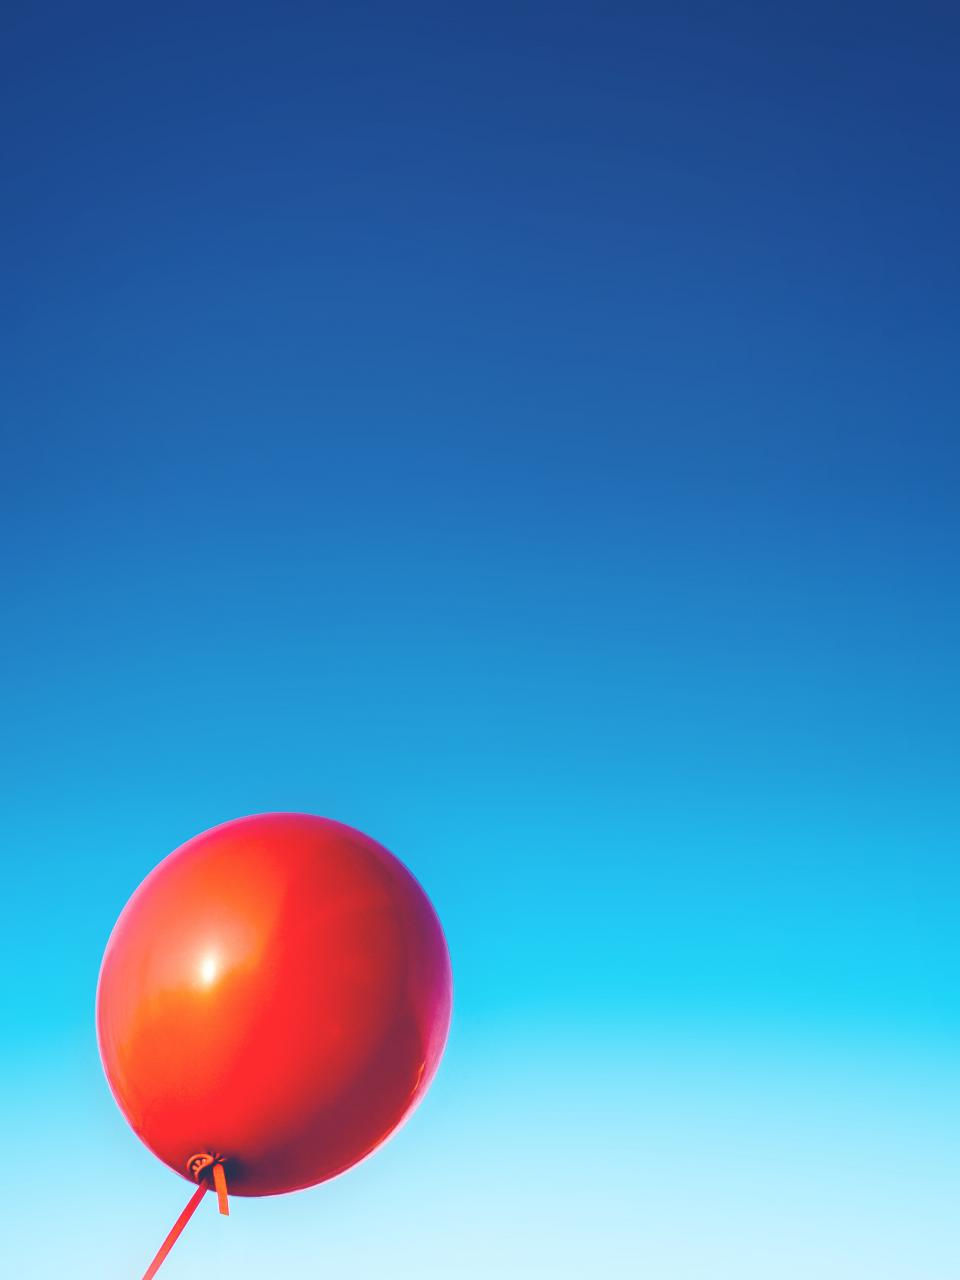 red balloon blue sky objects